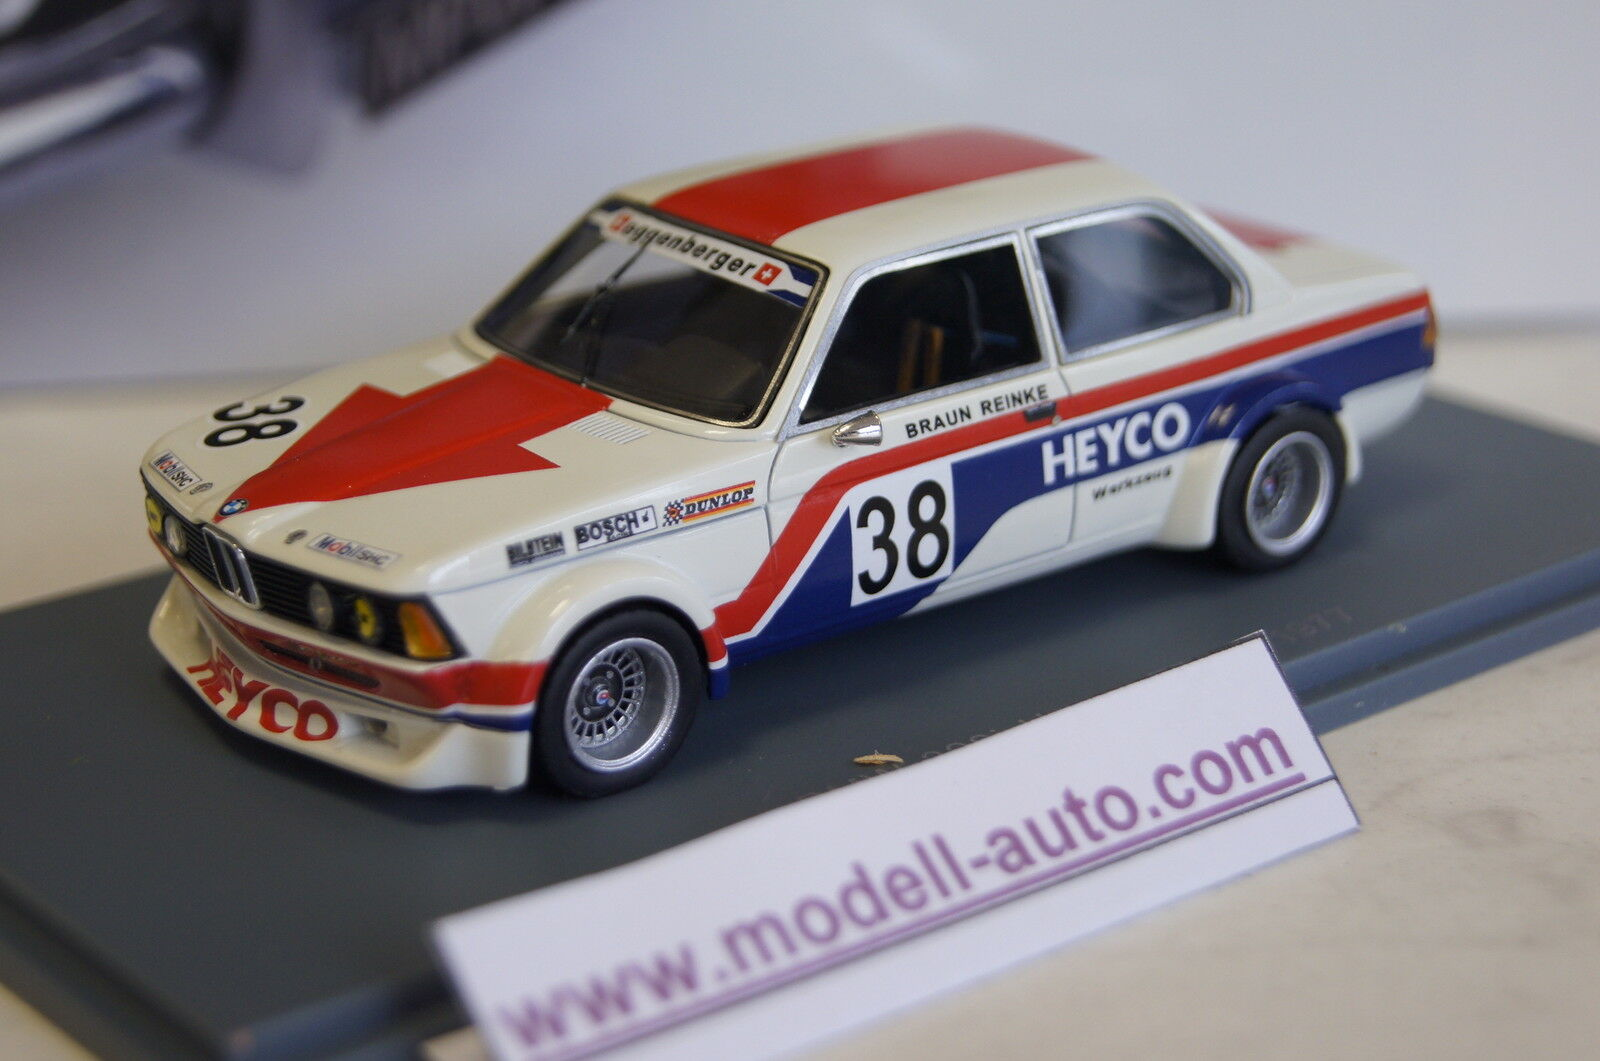 BMW 320 taille 2 Heyco herses Berger MS ETCC 1977 1 43 Neo NOUVEAU & OVP